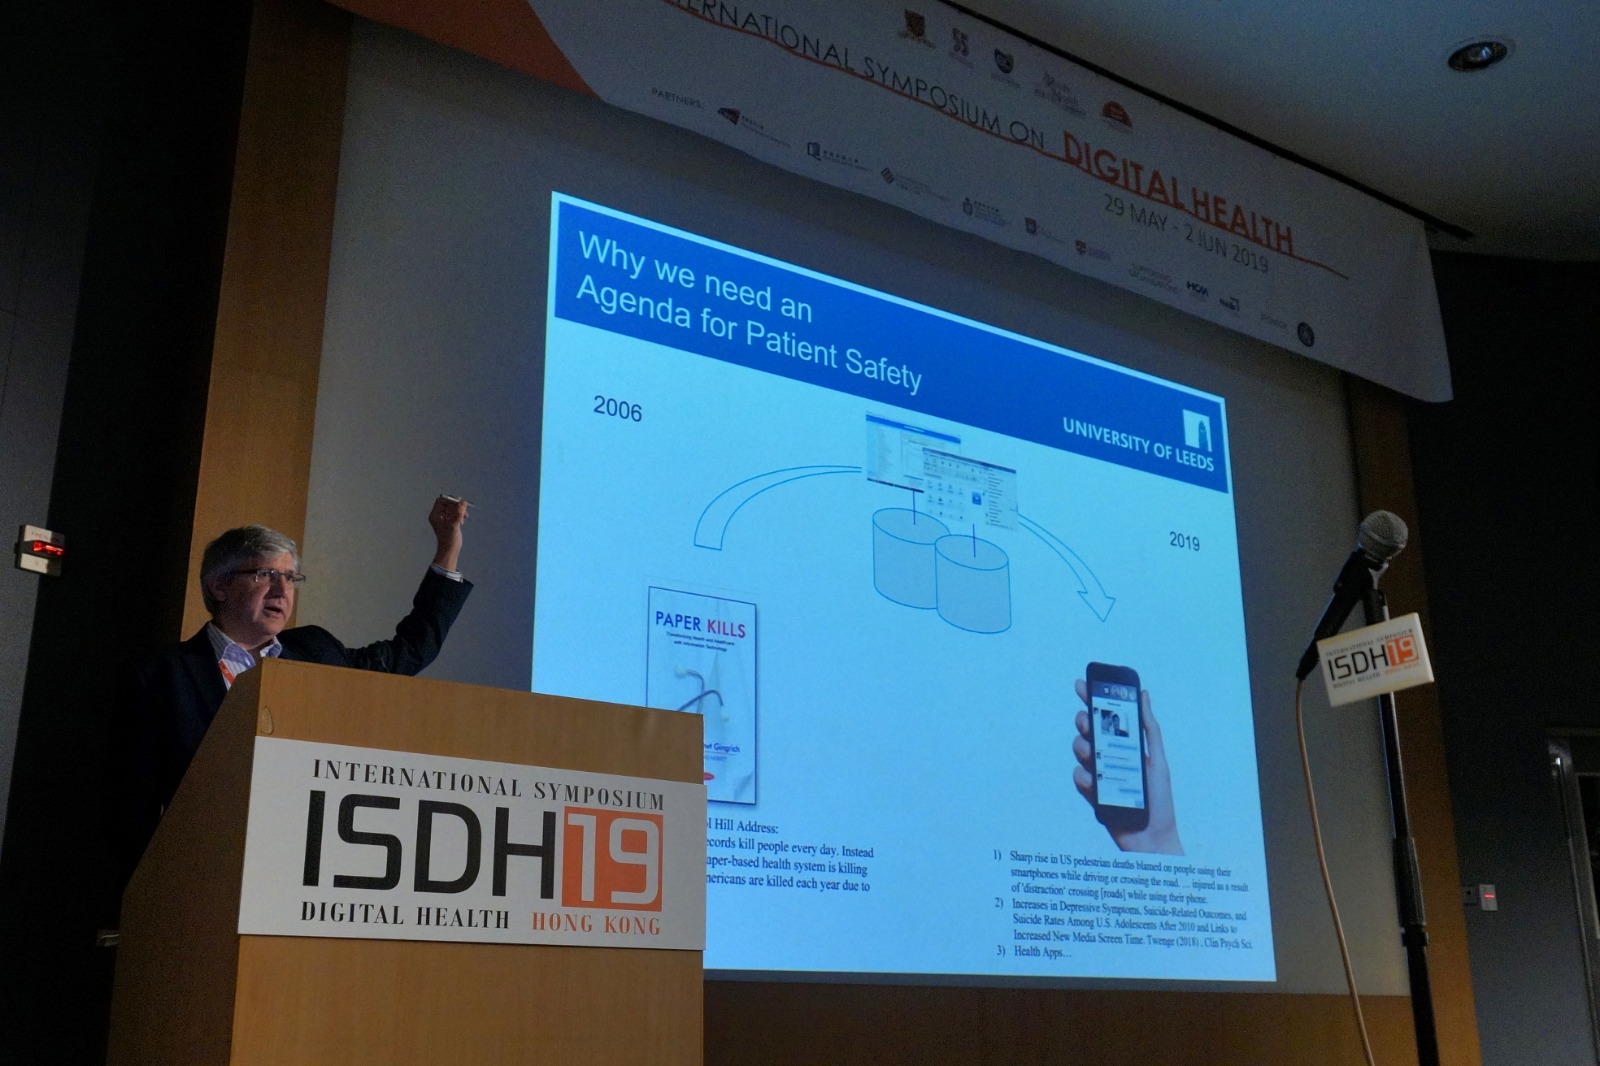 Digital Innovation for Patient Safety, on the international stage